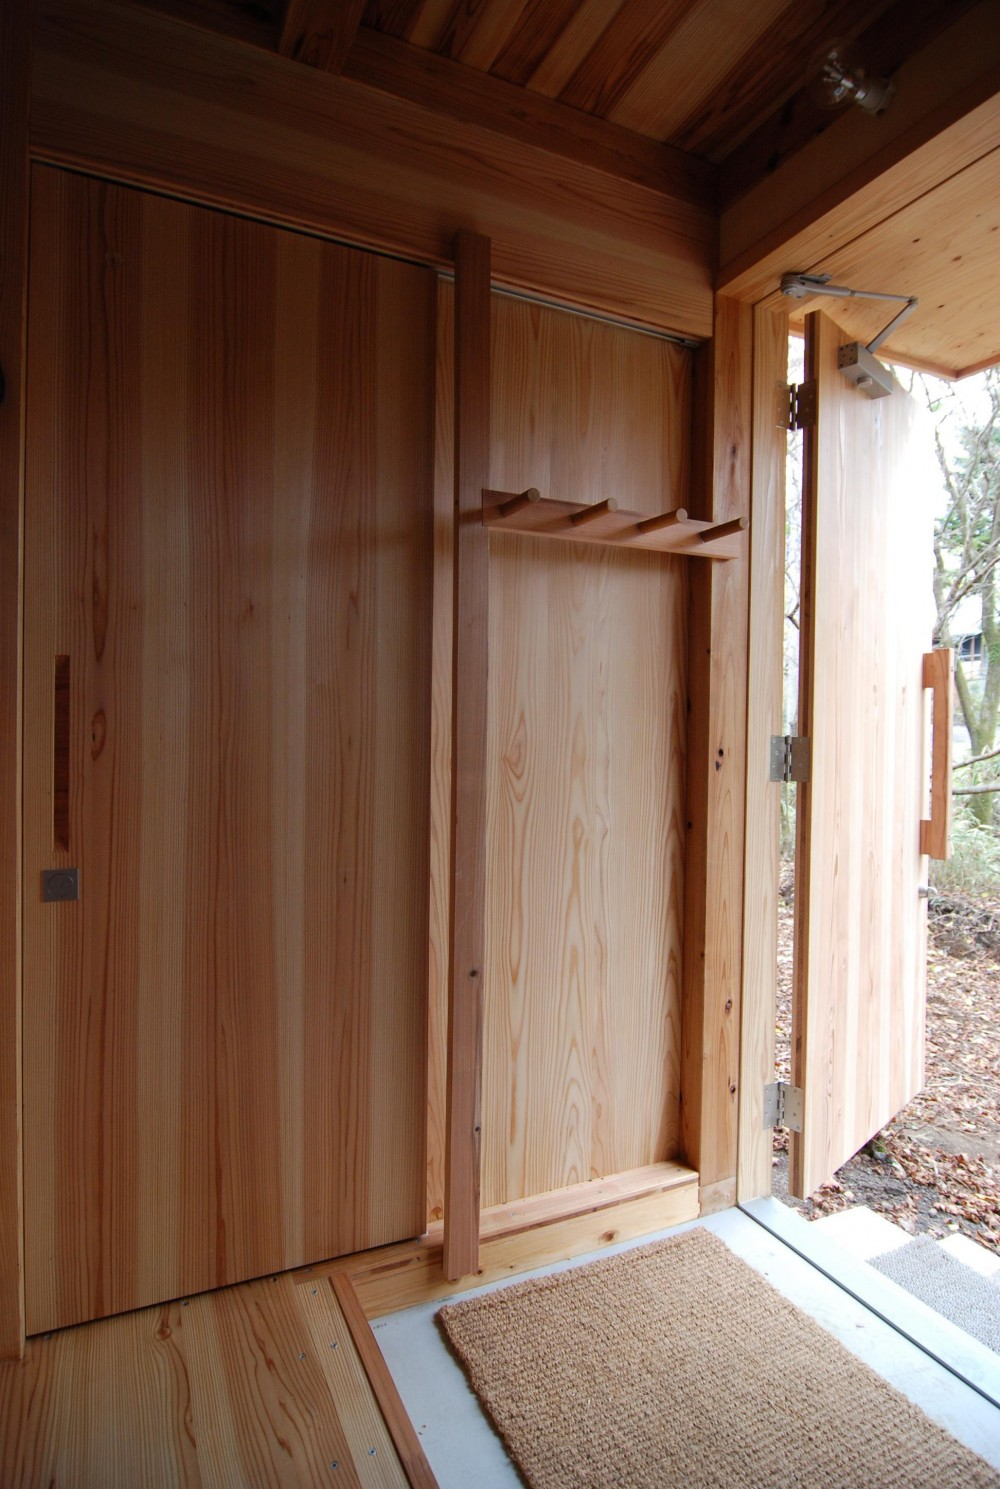 OUR CABIN OUR DIY (3層合板引き戸)